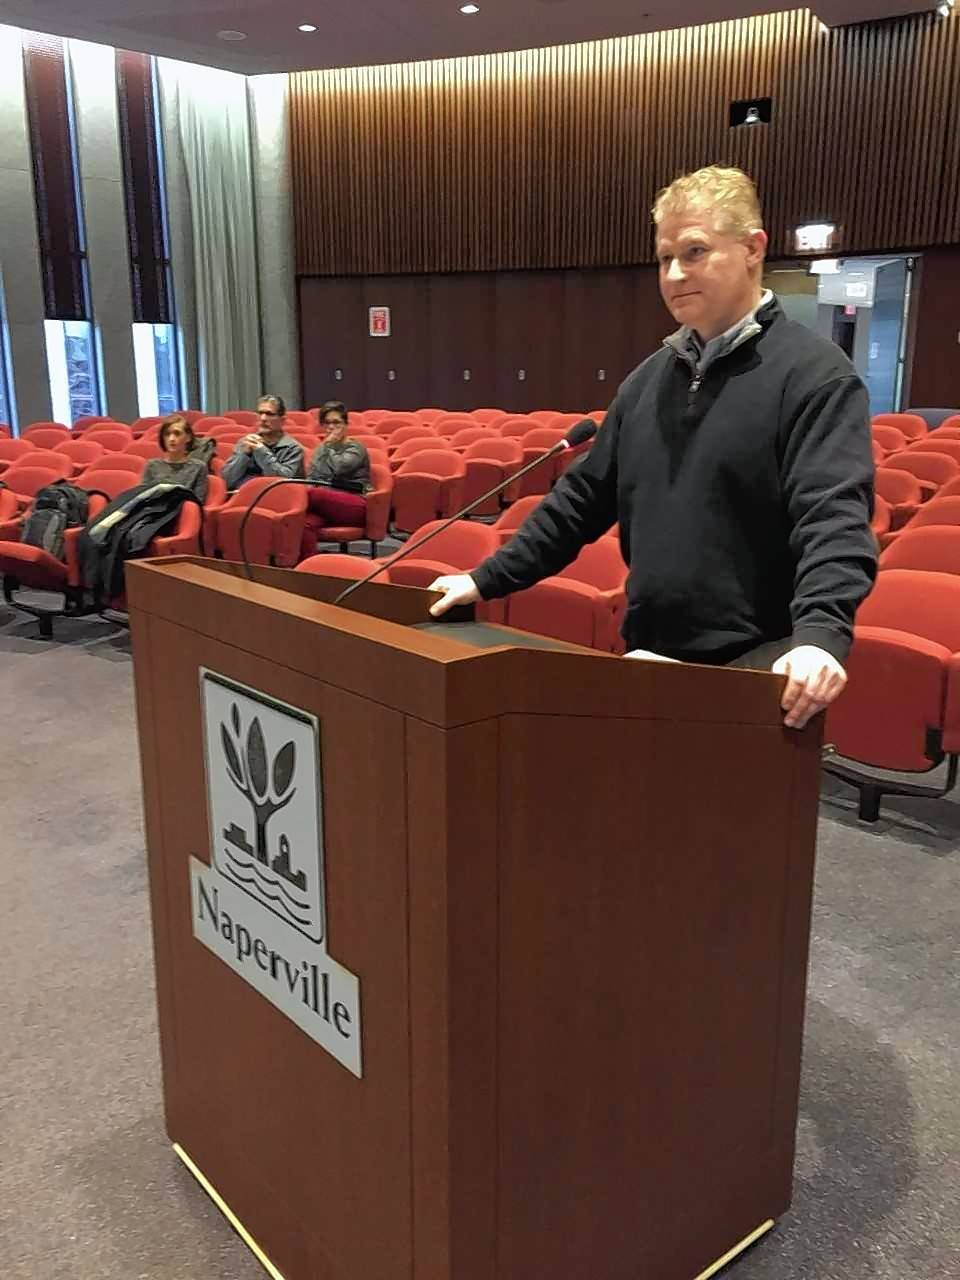 Chip VonLehman, potential franchiser of a Cincinnati-based ice cream called Buzzed Bull Creamery that offers booze-infused options, reacts Thursday as the Naperville liquor commission shows an early willingness to create a new liquor license to allow his concept to be legal.